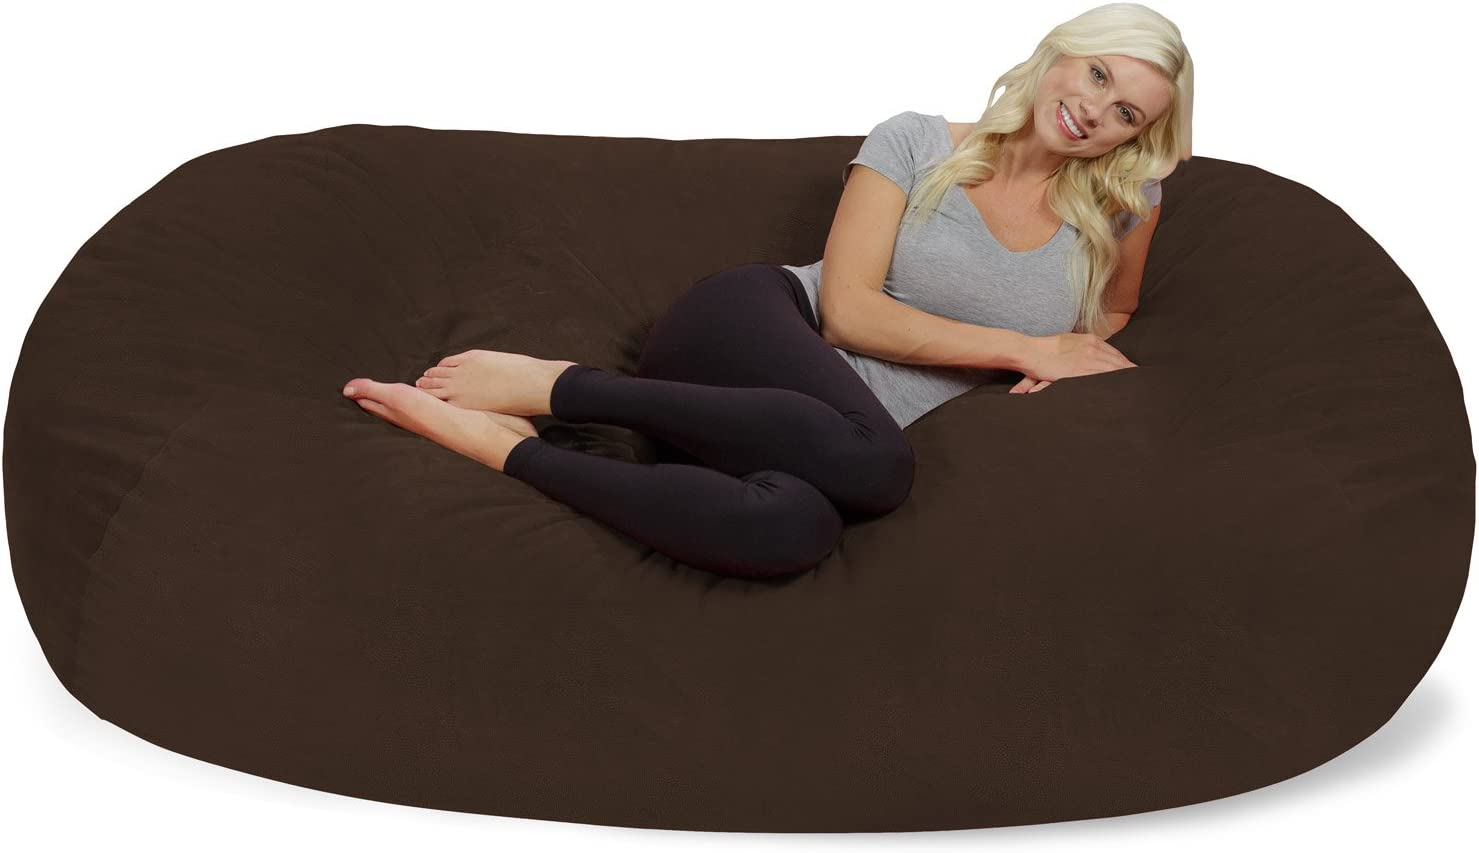 Chill Sack Bean Bag Chair: Huge 7.5' Memory Foam Furniture Bag and Large Lounger - Big Sofa with Soft Micro Fiber Cover - Brown Pebble